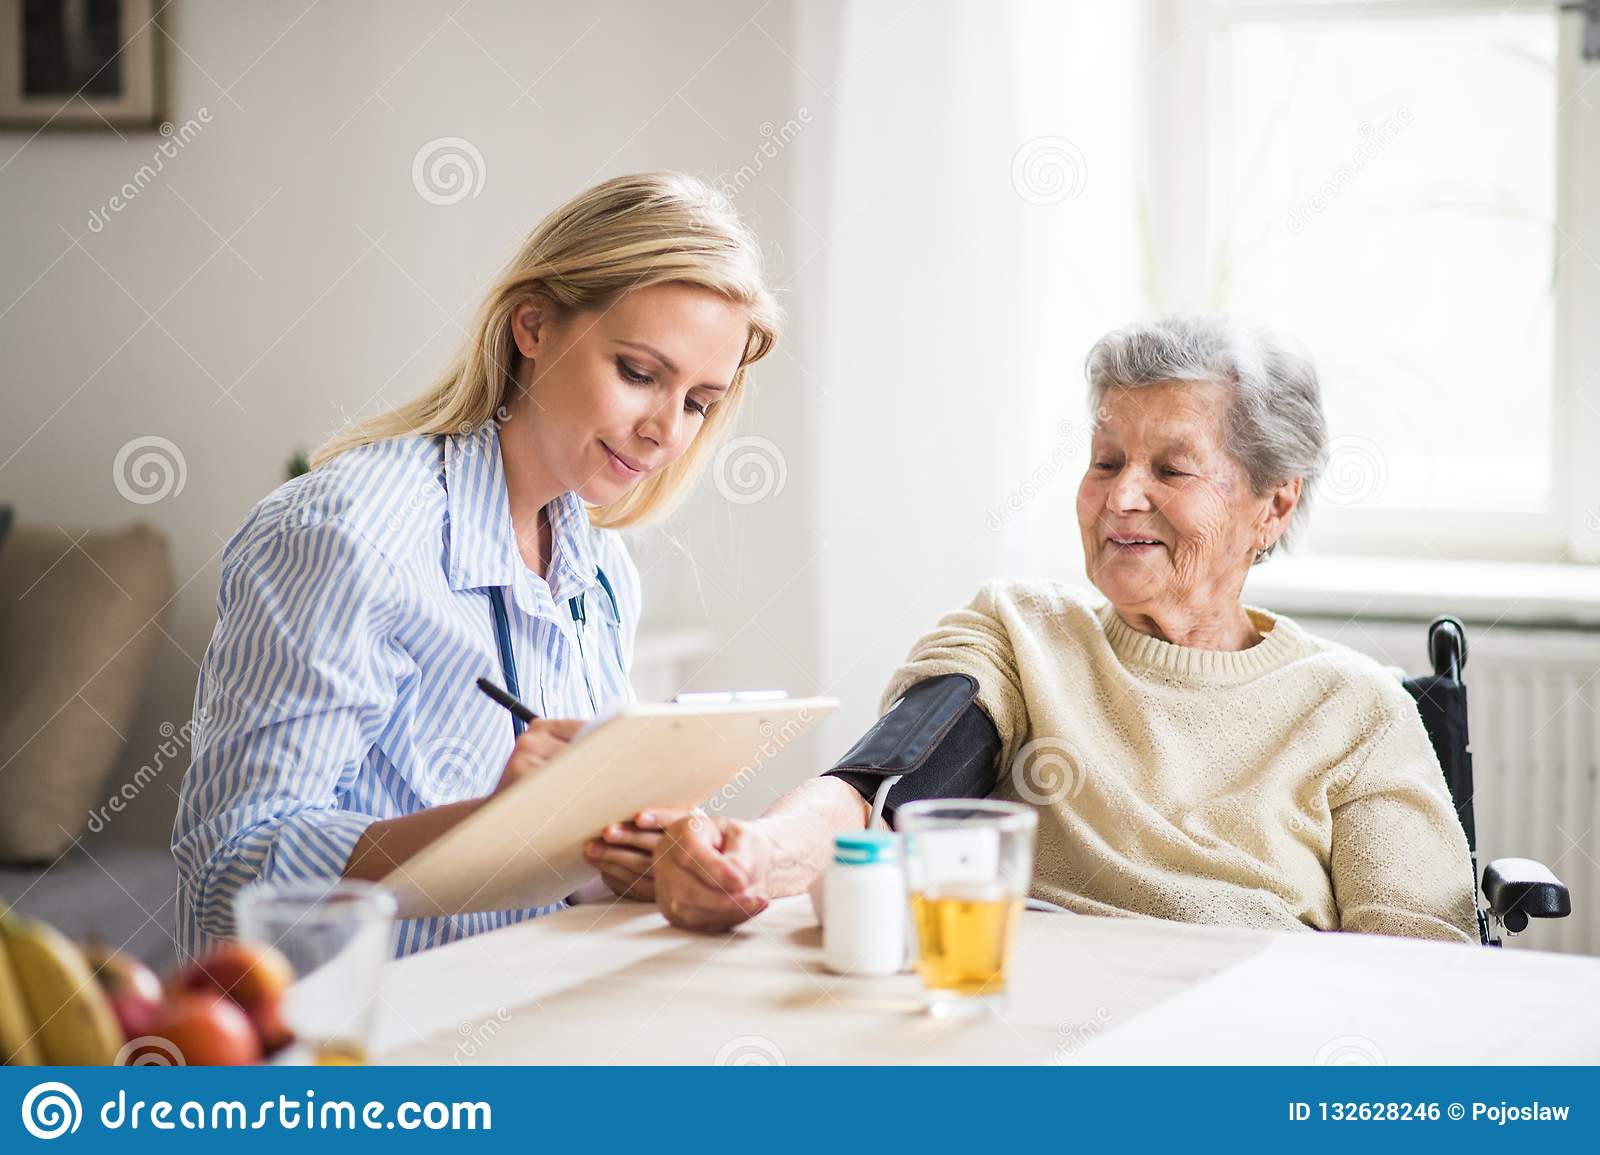 A health visitor measuring a blood pressure of a senior woman at home.